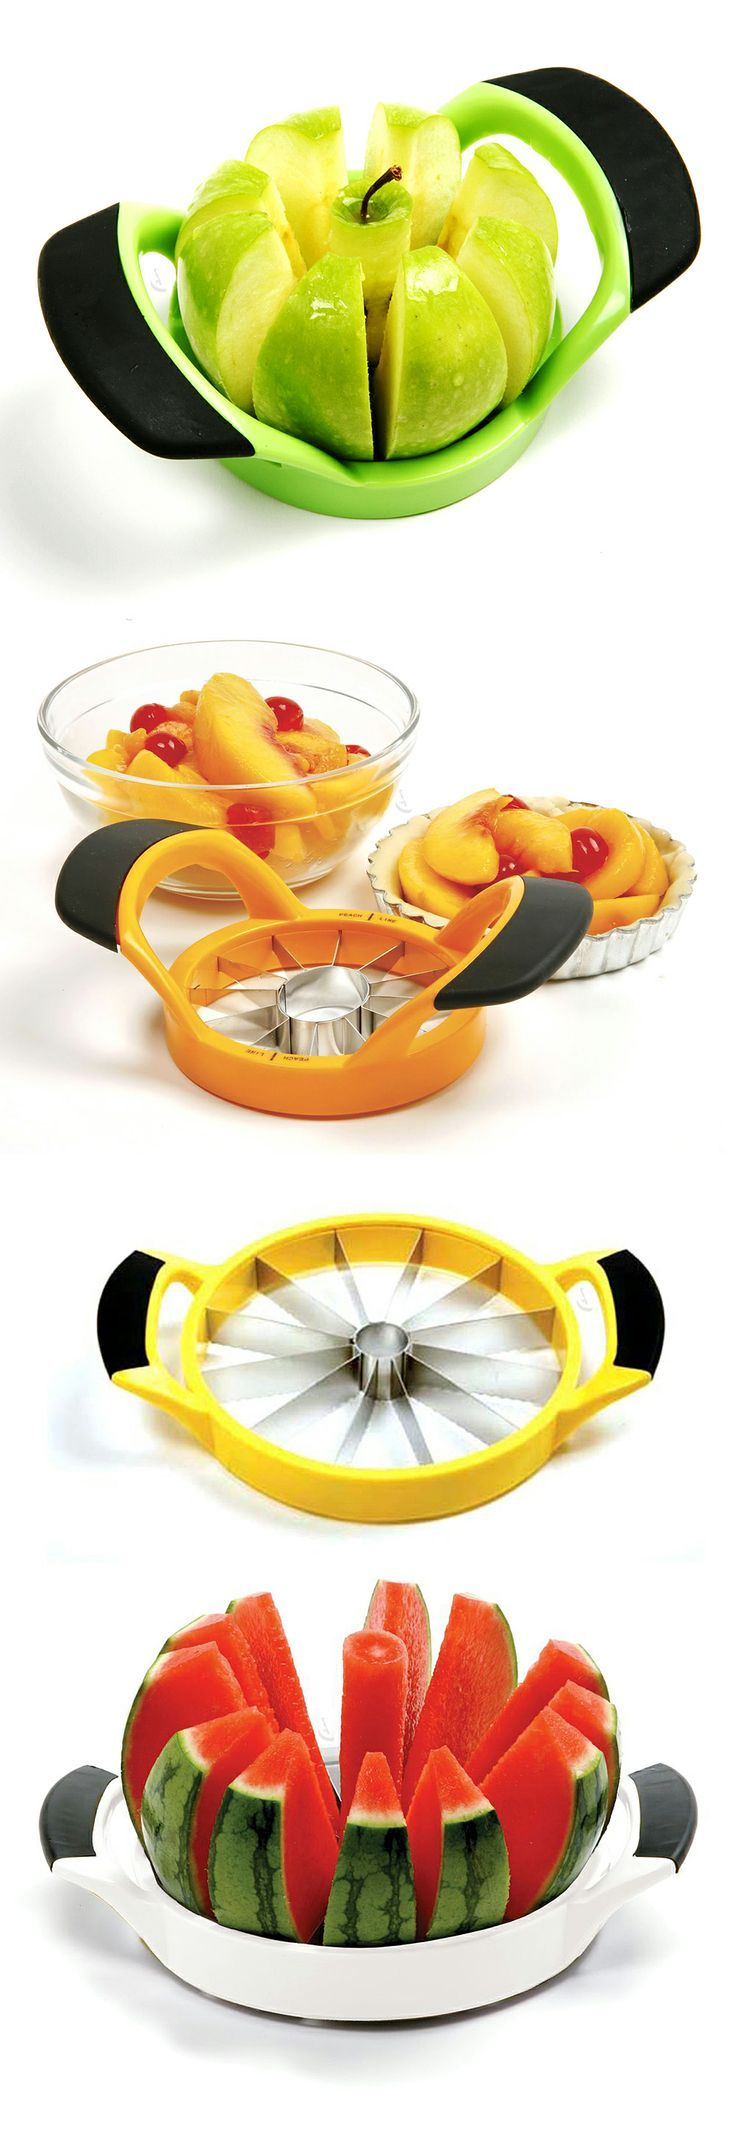 Quick fruit cutter corer // 3 sizes, for perfectly sliced peaches, to cored and sliced apples, all the way to cutting melons! #product_design